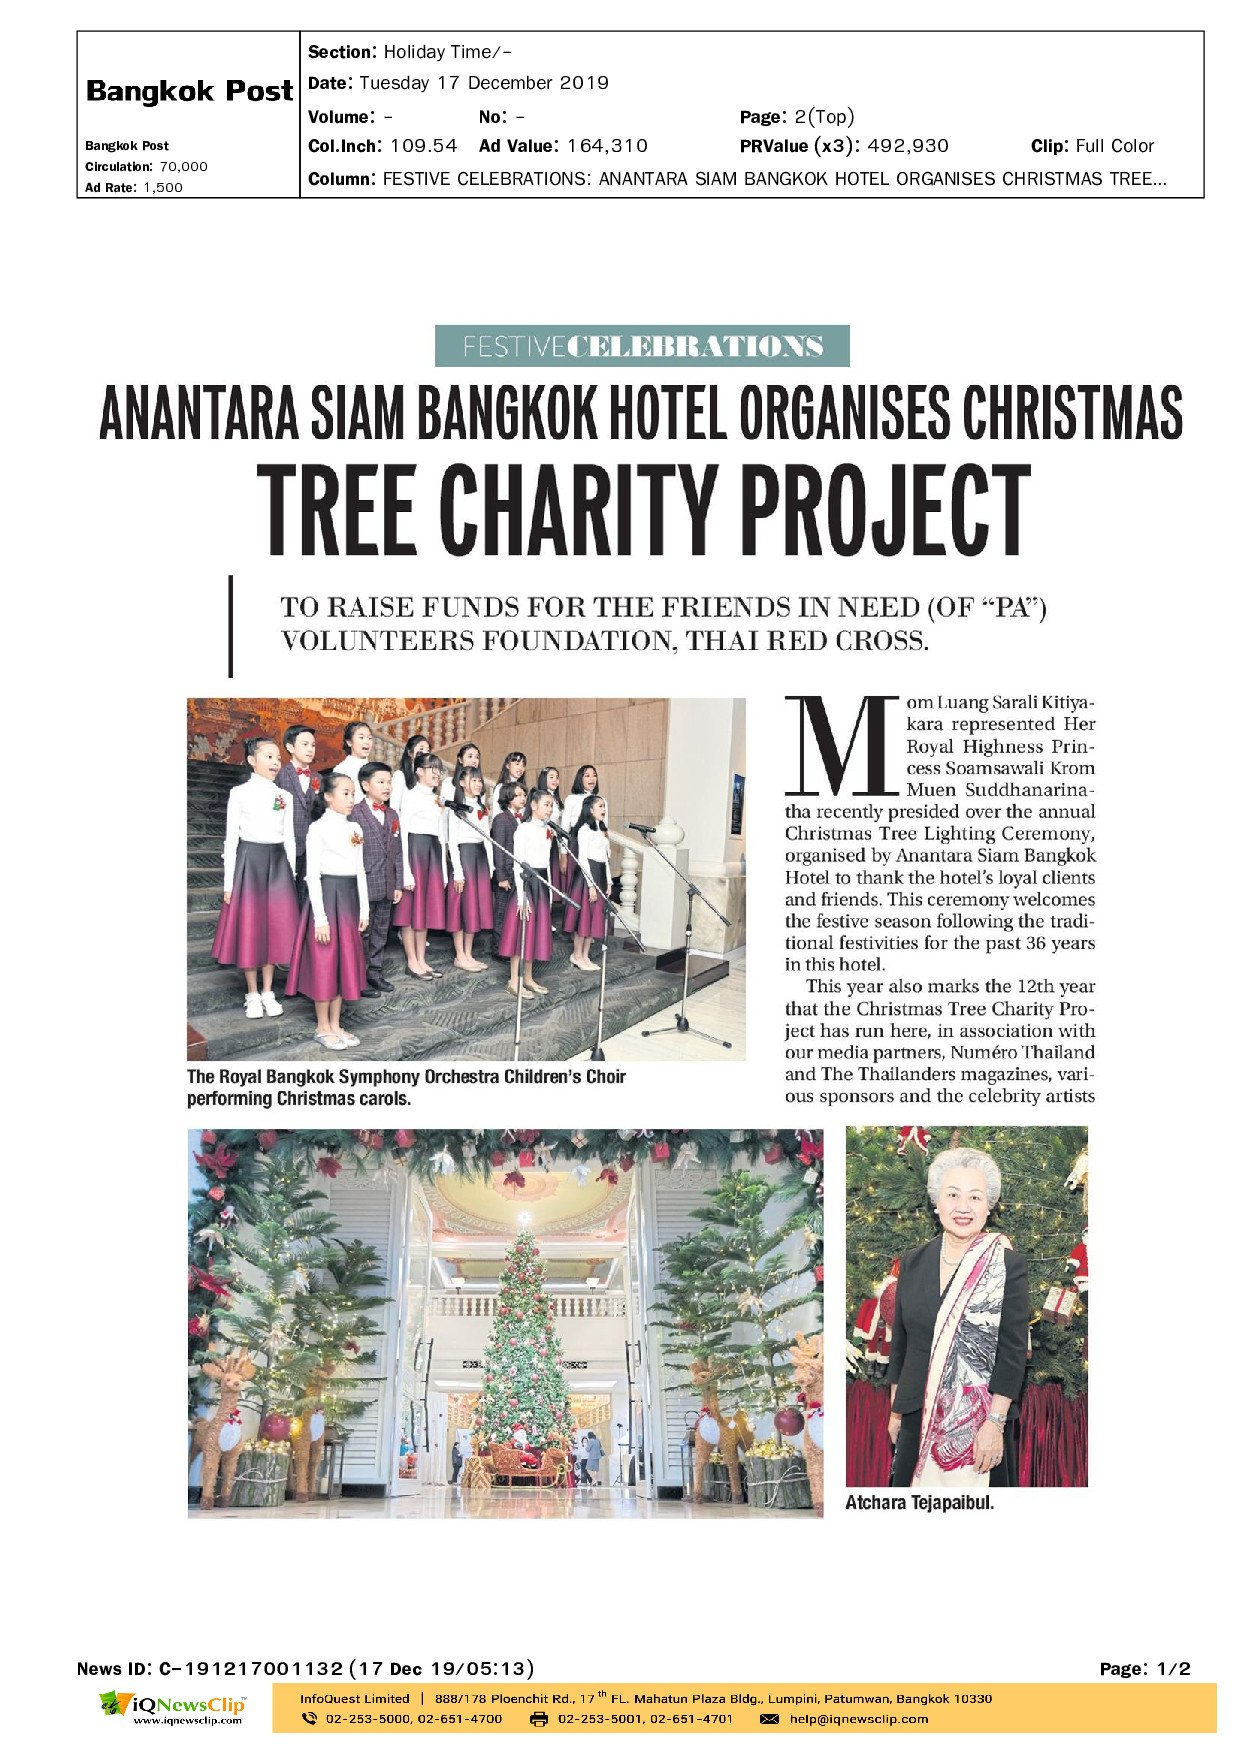 CHRISTMAS TREE CHARITY PROJECT